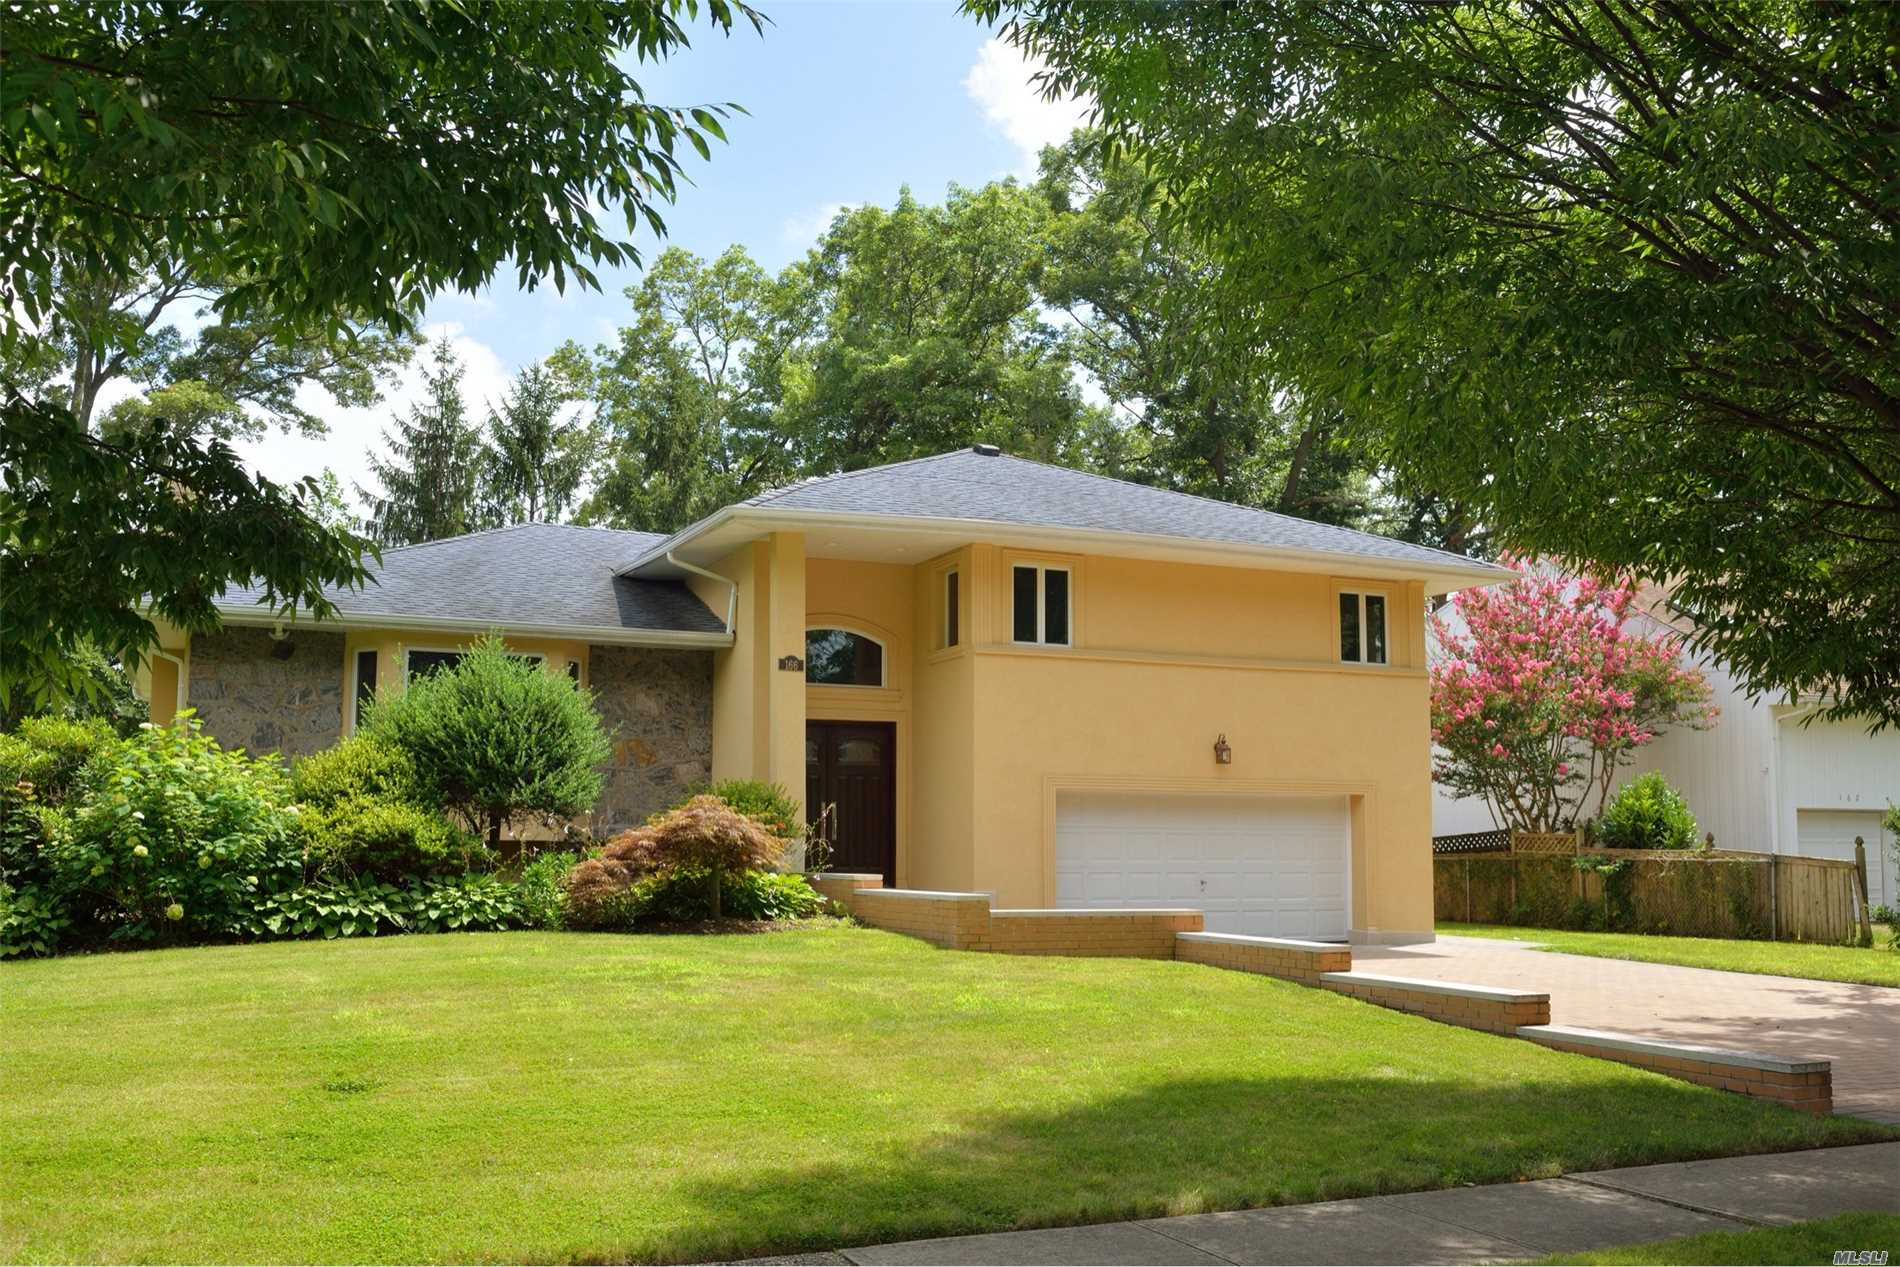 Detailed And Handcrafted To Perfection! Extraordinary Move-In Condition. Cherry Hardwood Floor Throughout The Entire House. All New Andersen Windows. New Marble And Granite Kitchen & Bathroom. Led Recessed Lights Though Out. New Appliances, New Boiler, New Furnace. Fully Insulated Including Garage To Save Energy.